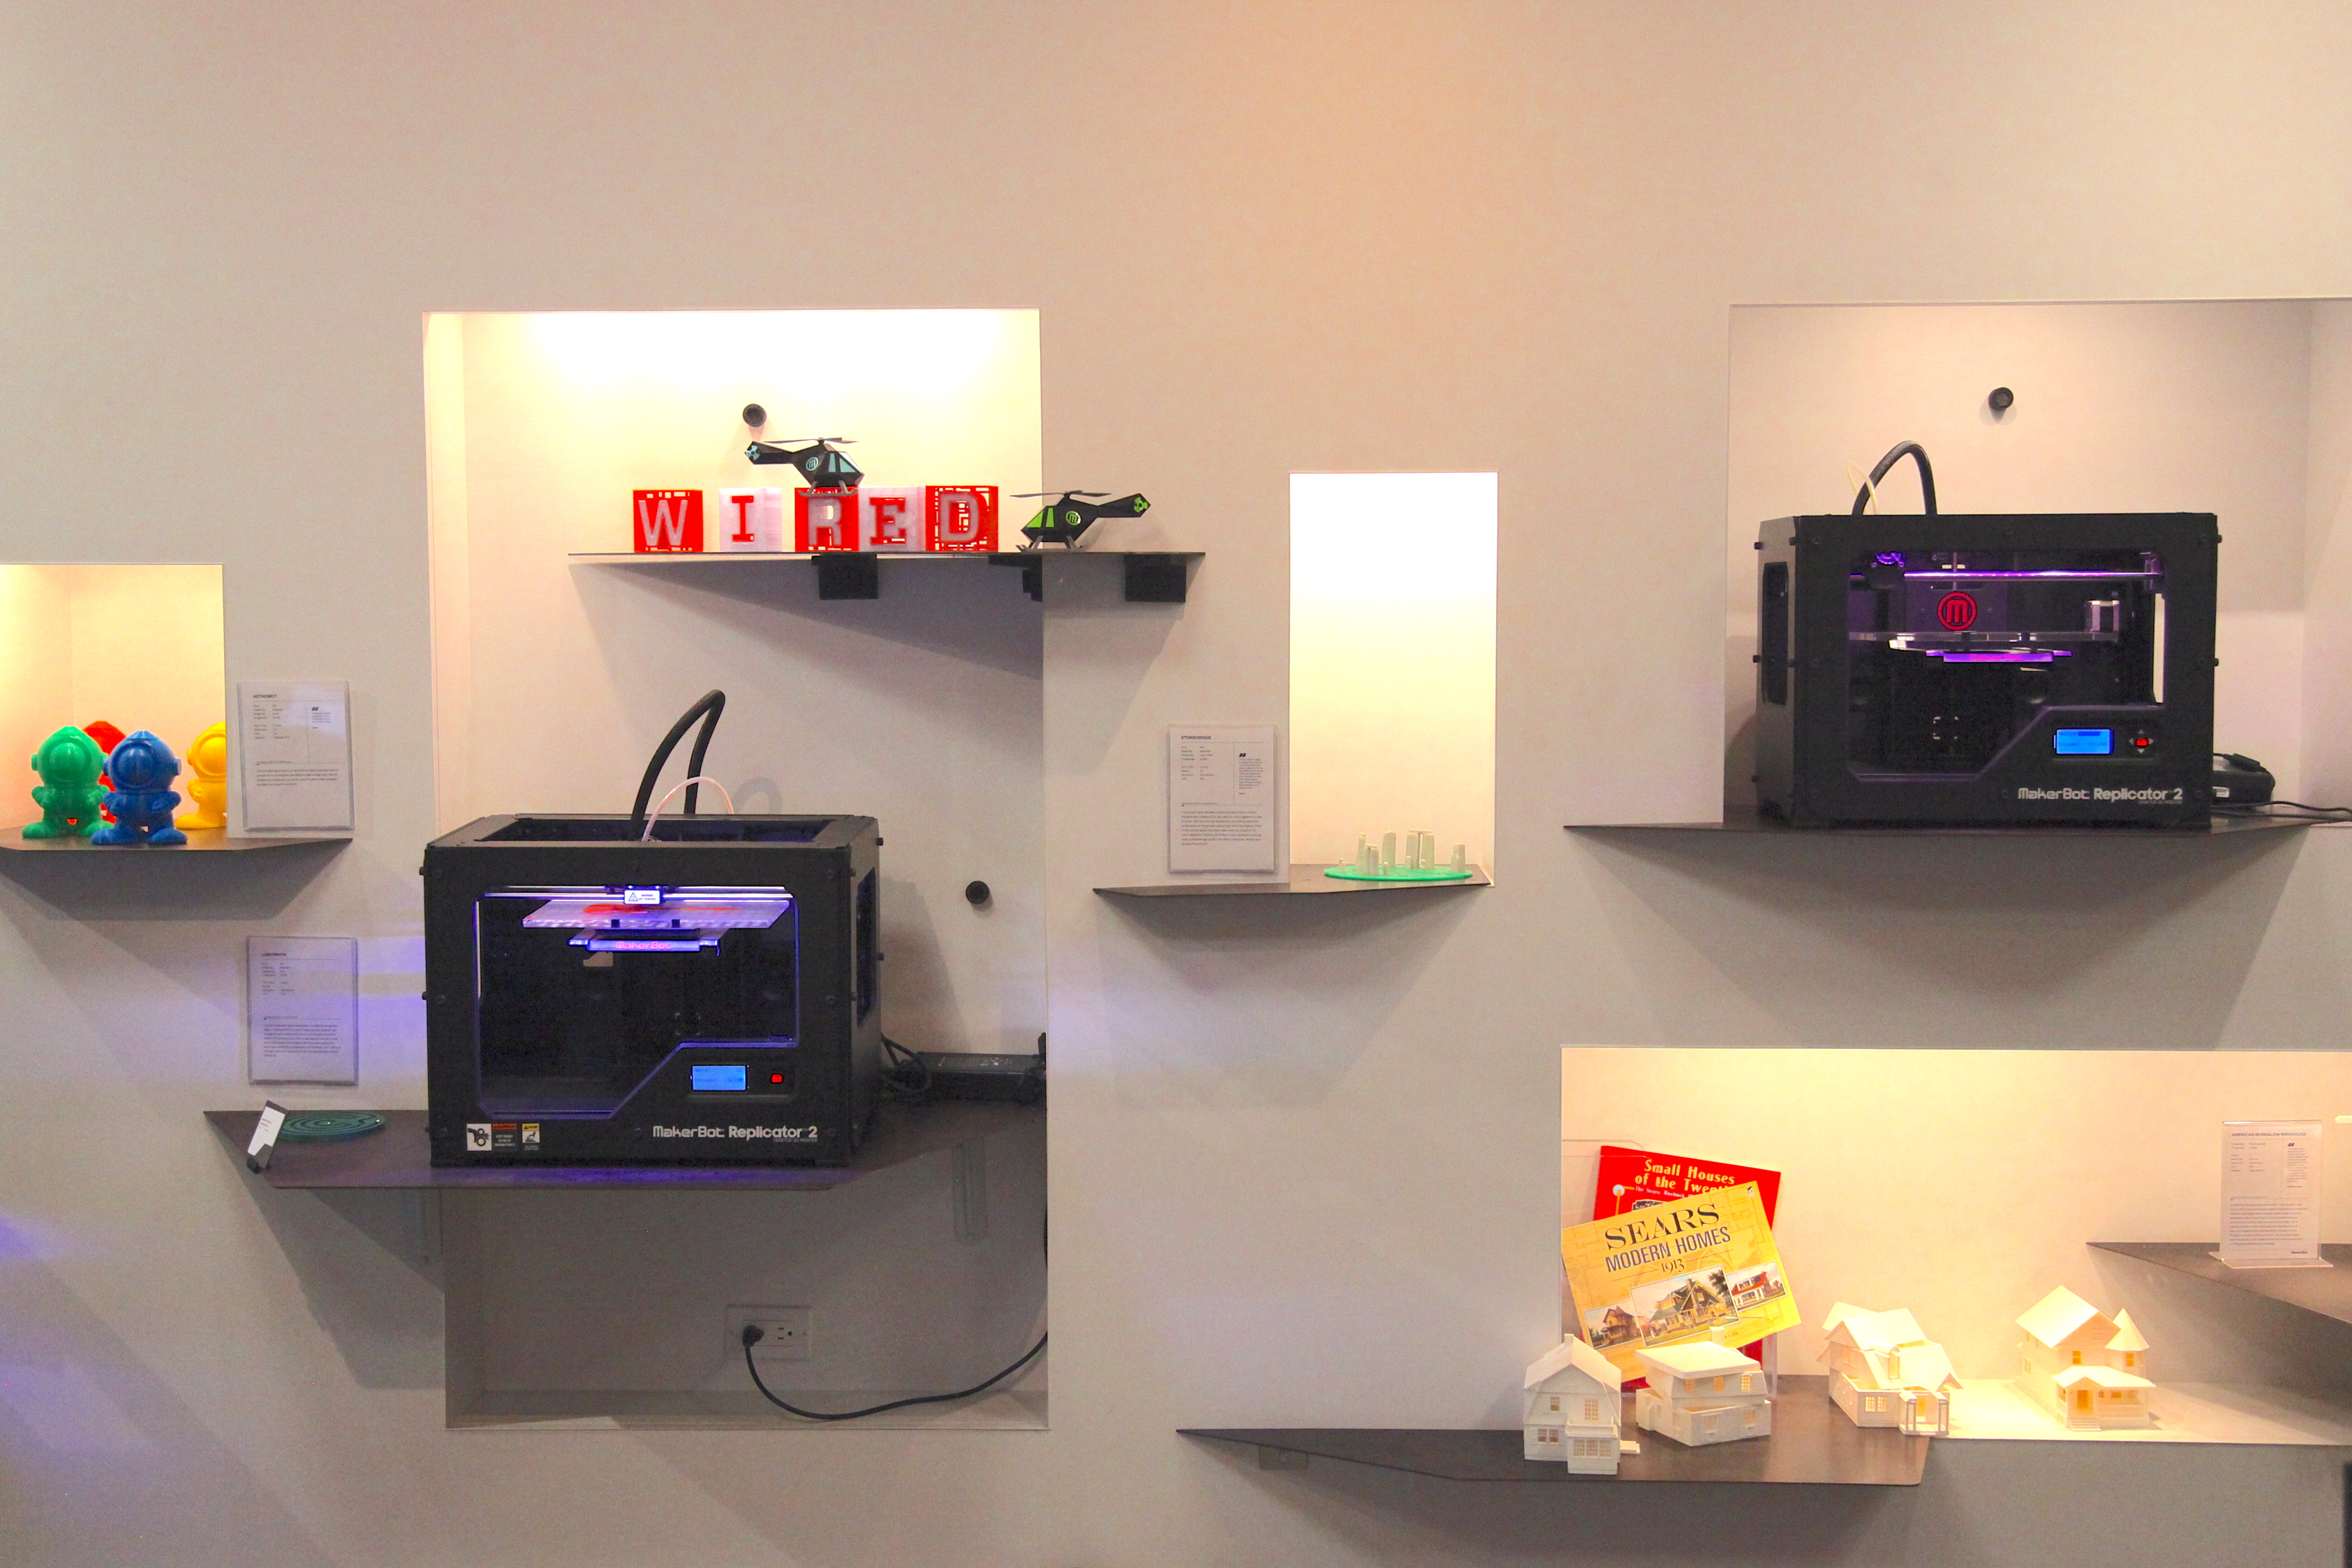 Replicator 2s in the MakerBot store in New York. Photo by Signe Brewster